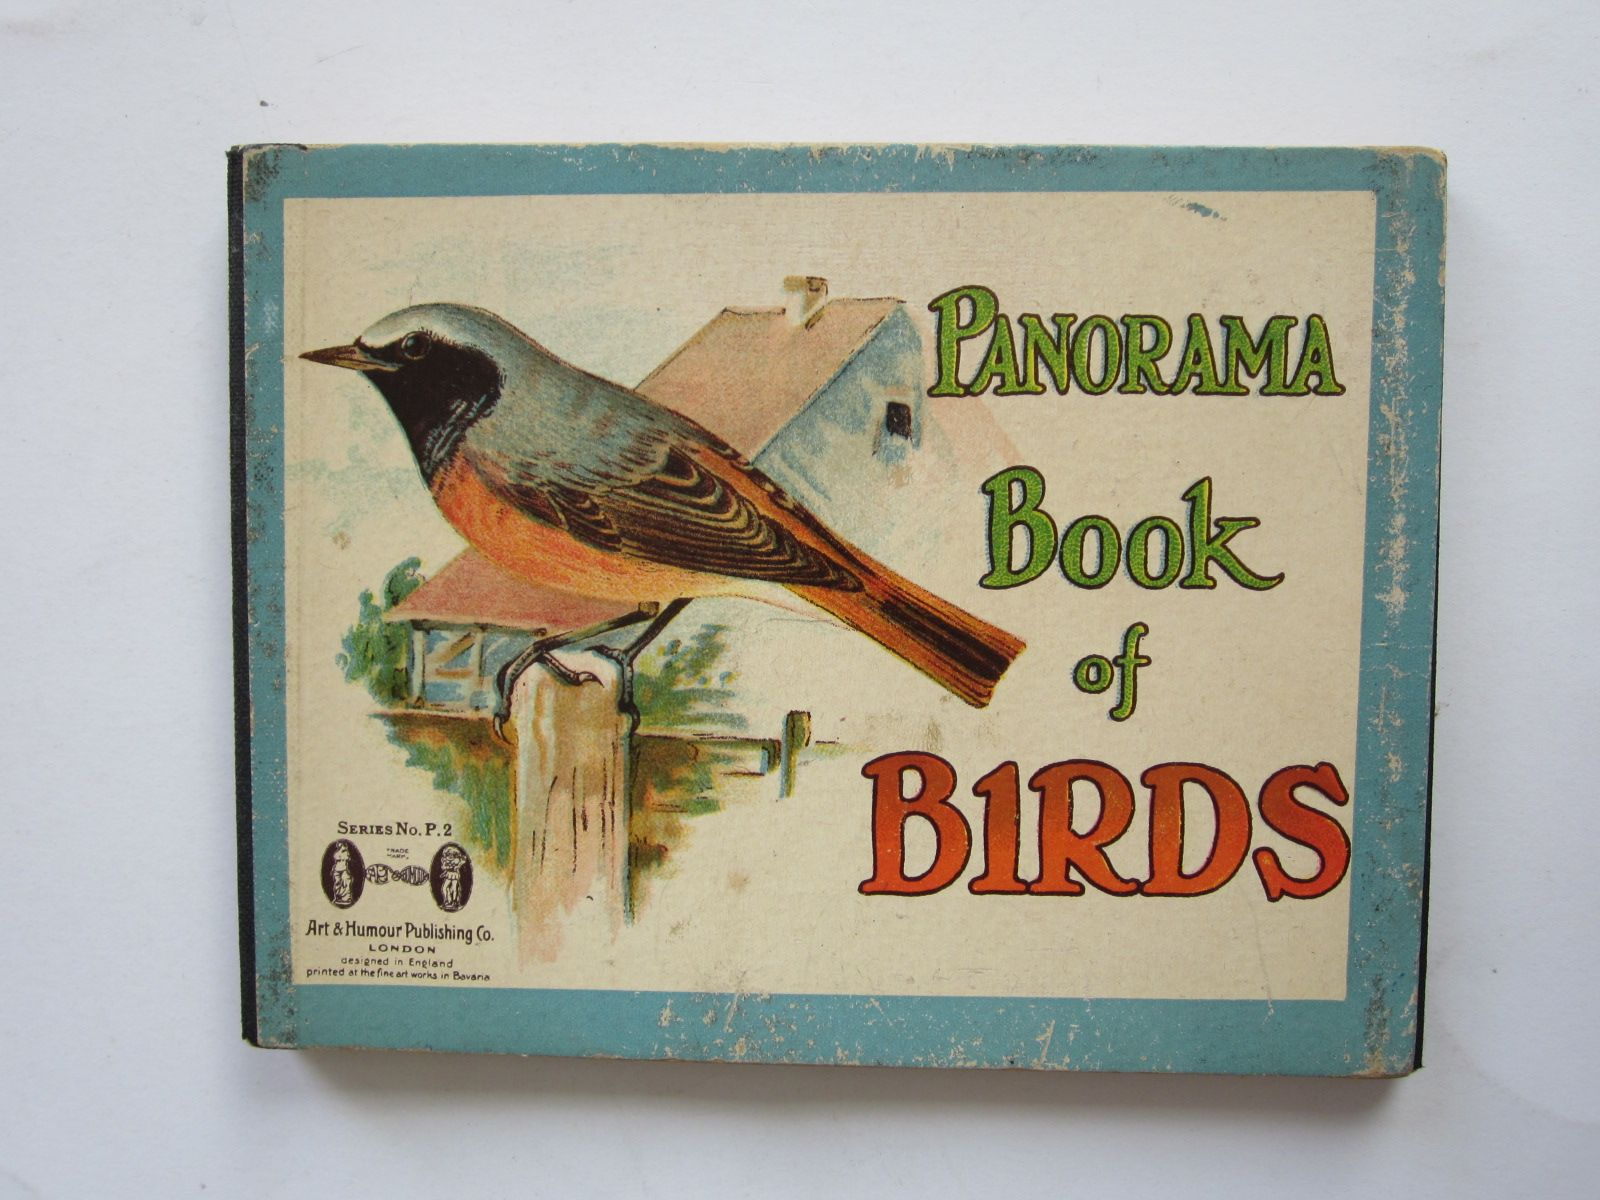 Photo of PANORAMA BOOK OF BIRDS published by Art & Humour Publishing Co. (STOCK CODE: 1309199)  for sale by Stella & Rose's Books